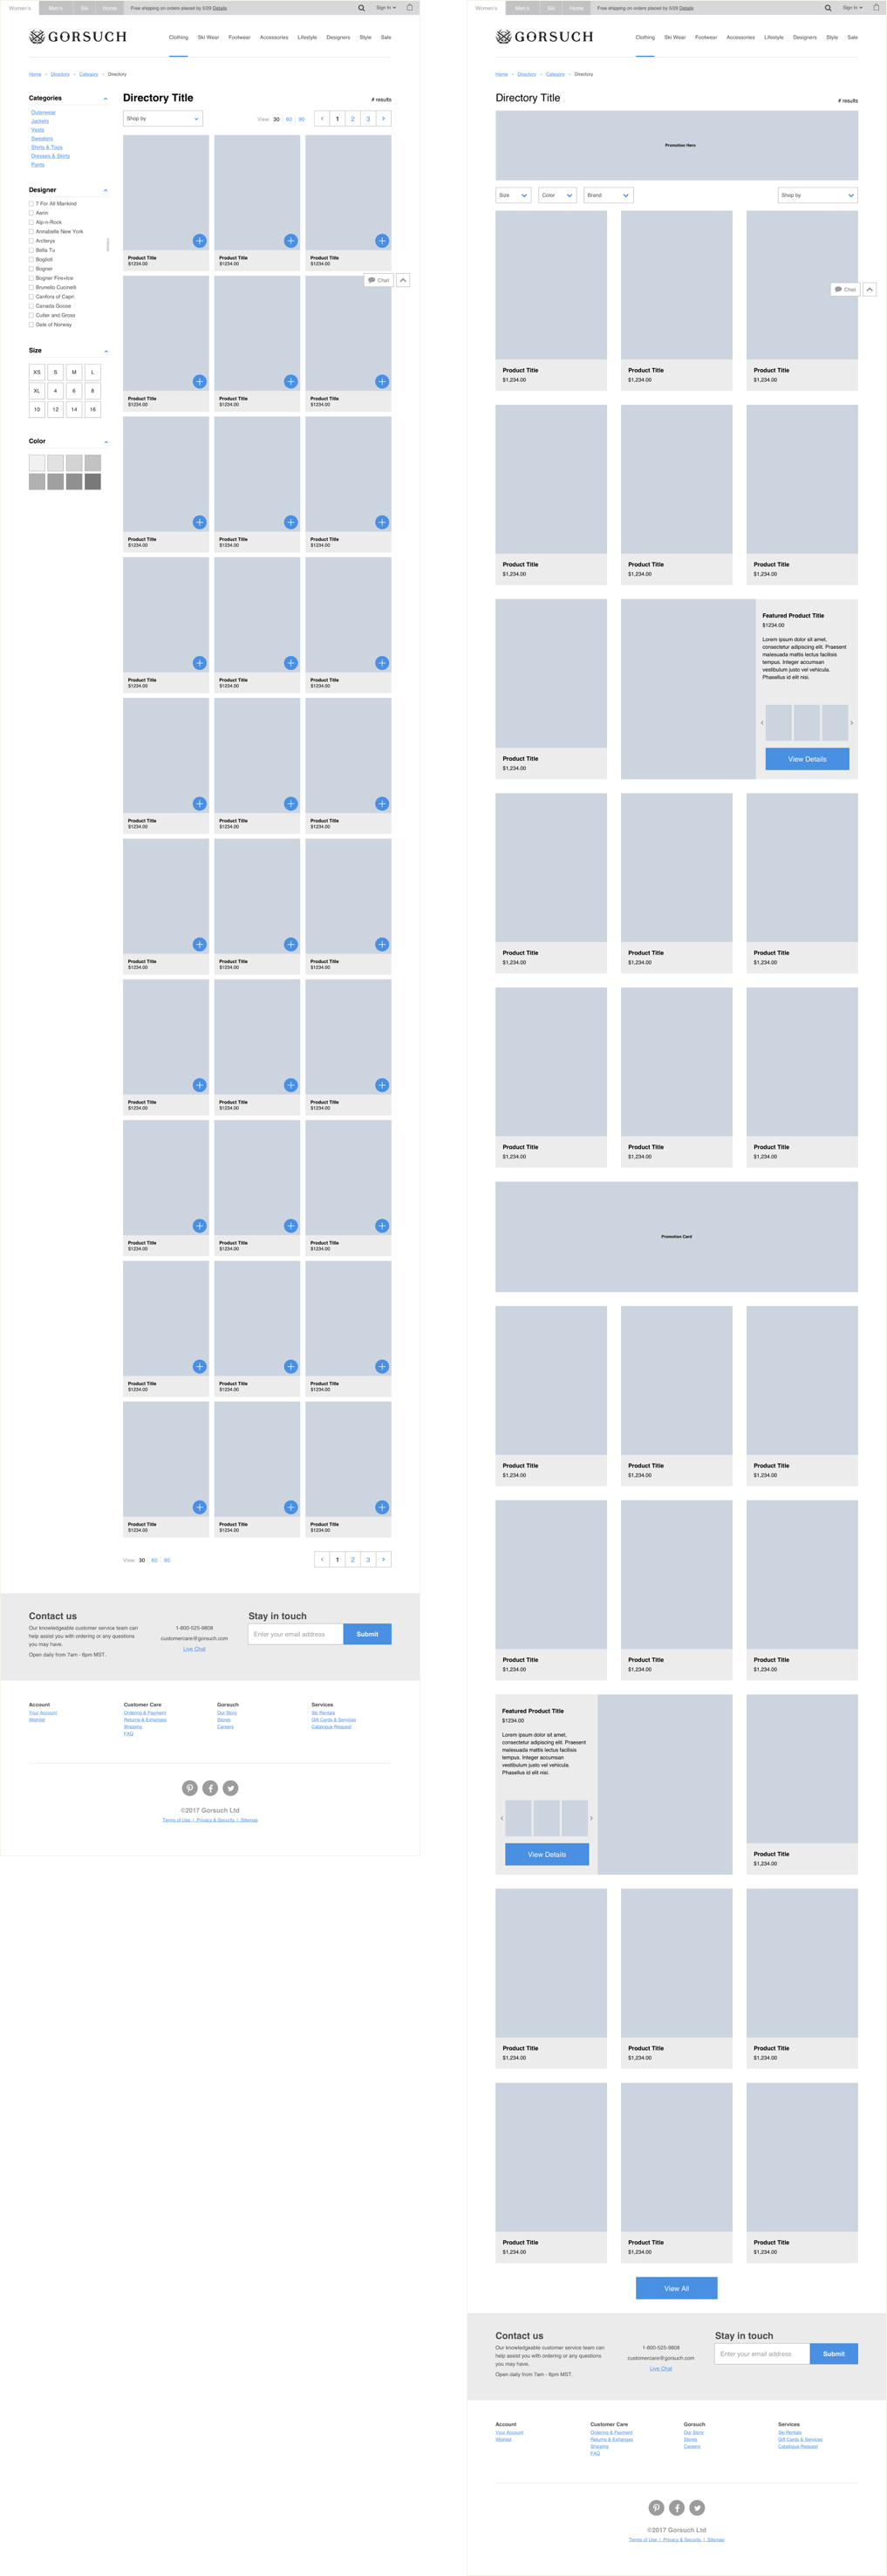 Wireframes showing the layout differences between the first and last iteration of the product directory page.